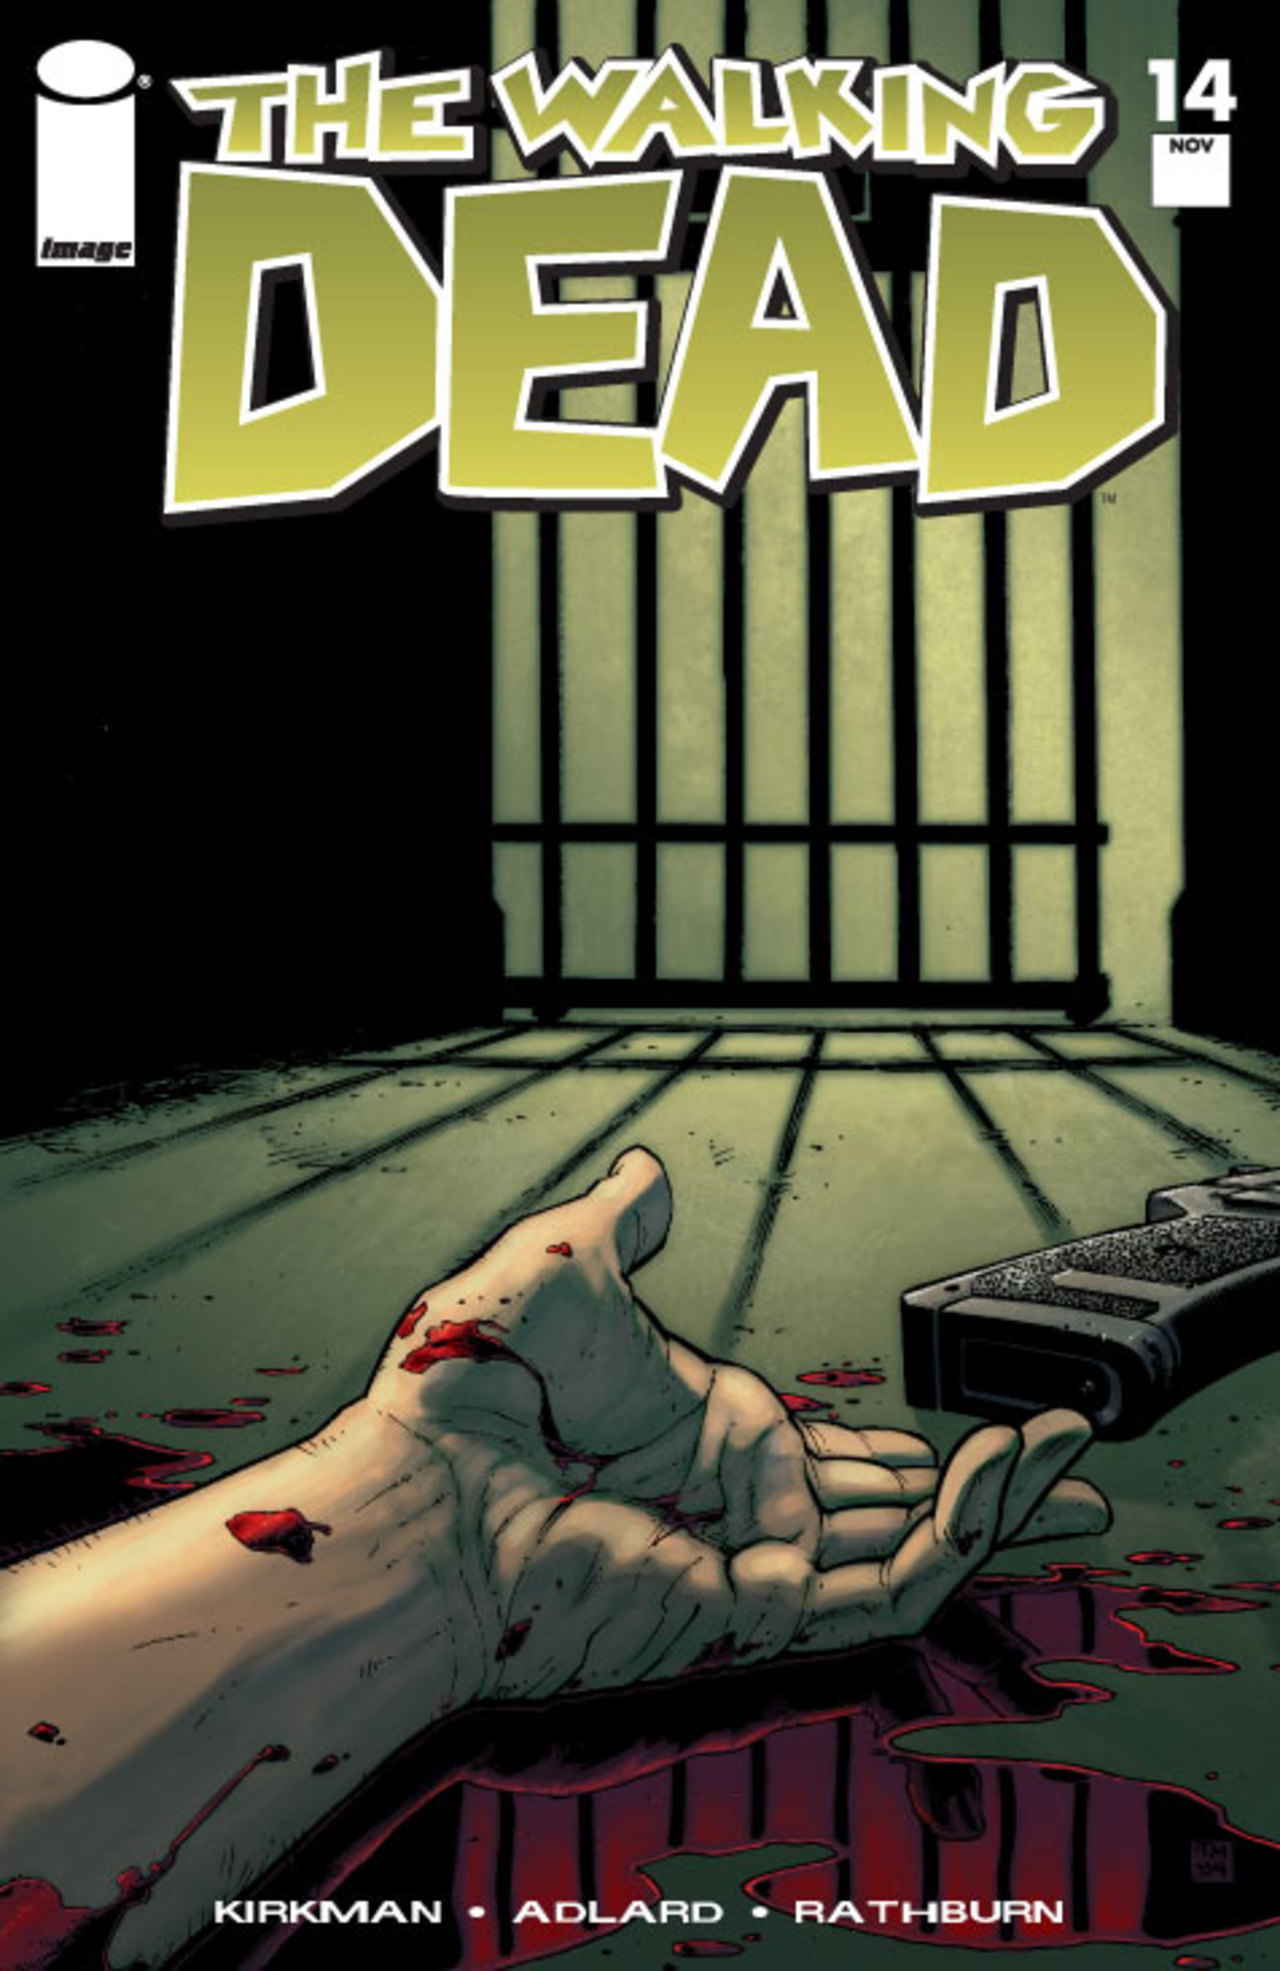 Cover Gallery Issue 14 Walking Dead